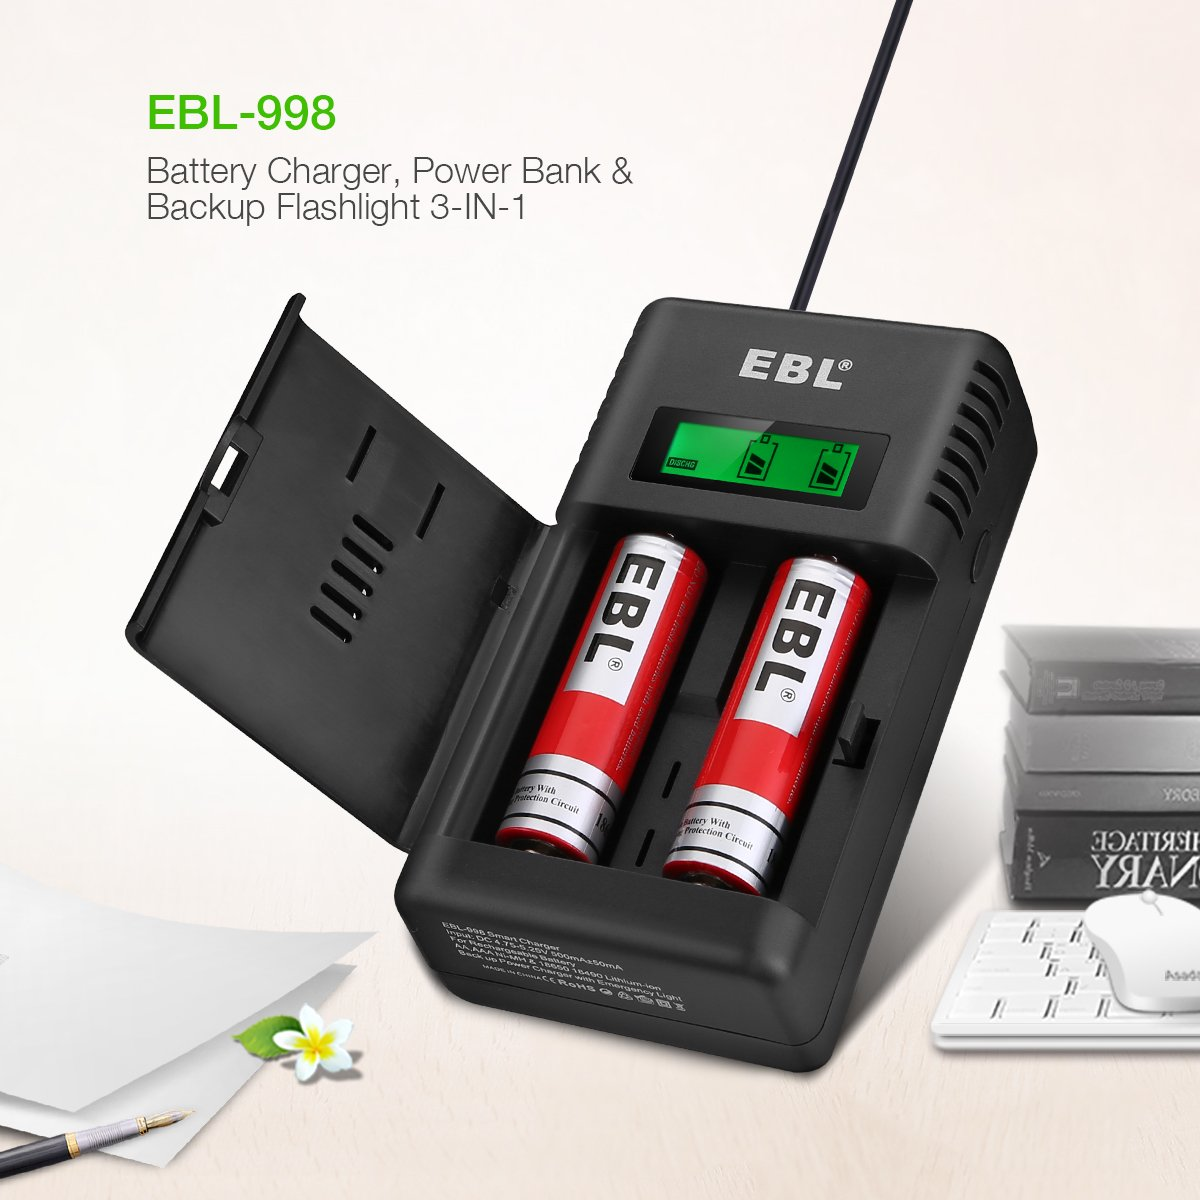 EBL Smart Battery Charger for Li-ion/IMR/Ni-MH/Ni-Cd 26650 18650 16340 RCR123 14500 10440 AA AAA AAAA C Rechargeable Battery with LED Flashlight(Battery Not Included) by EBL (Image #1)